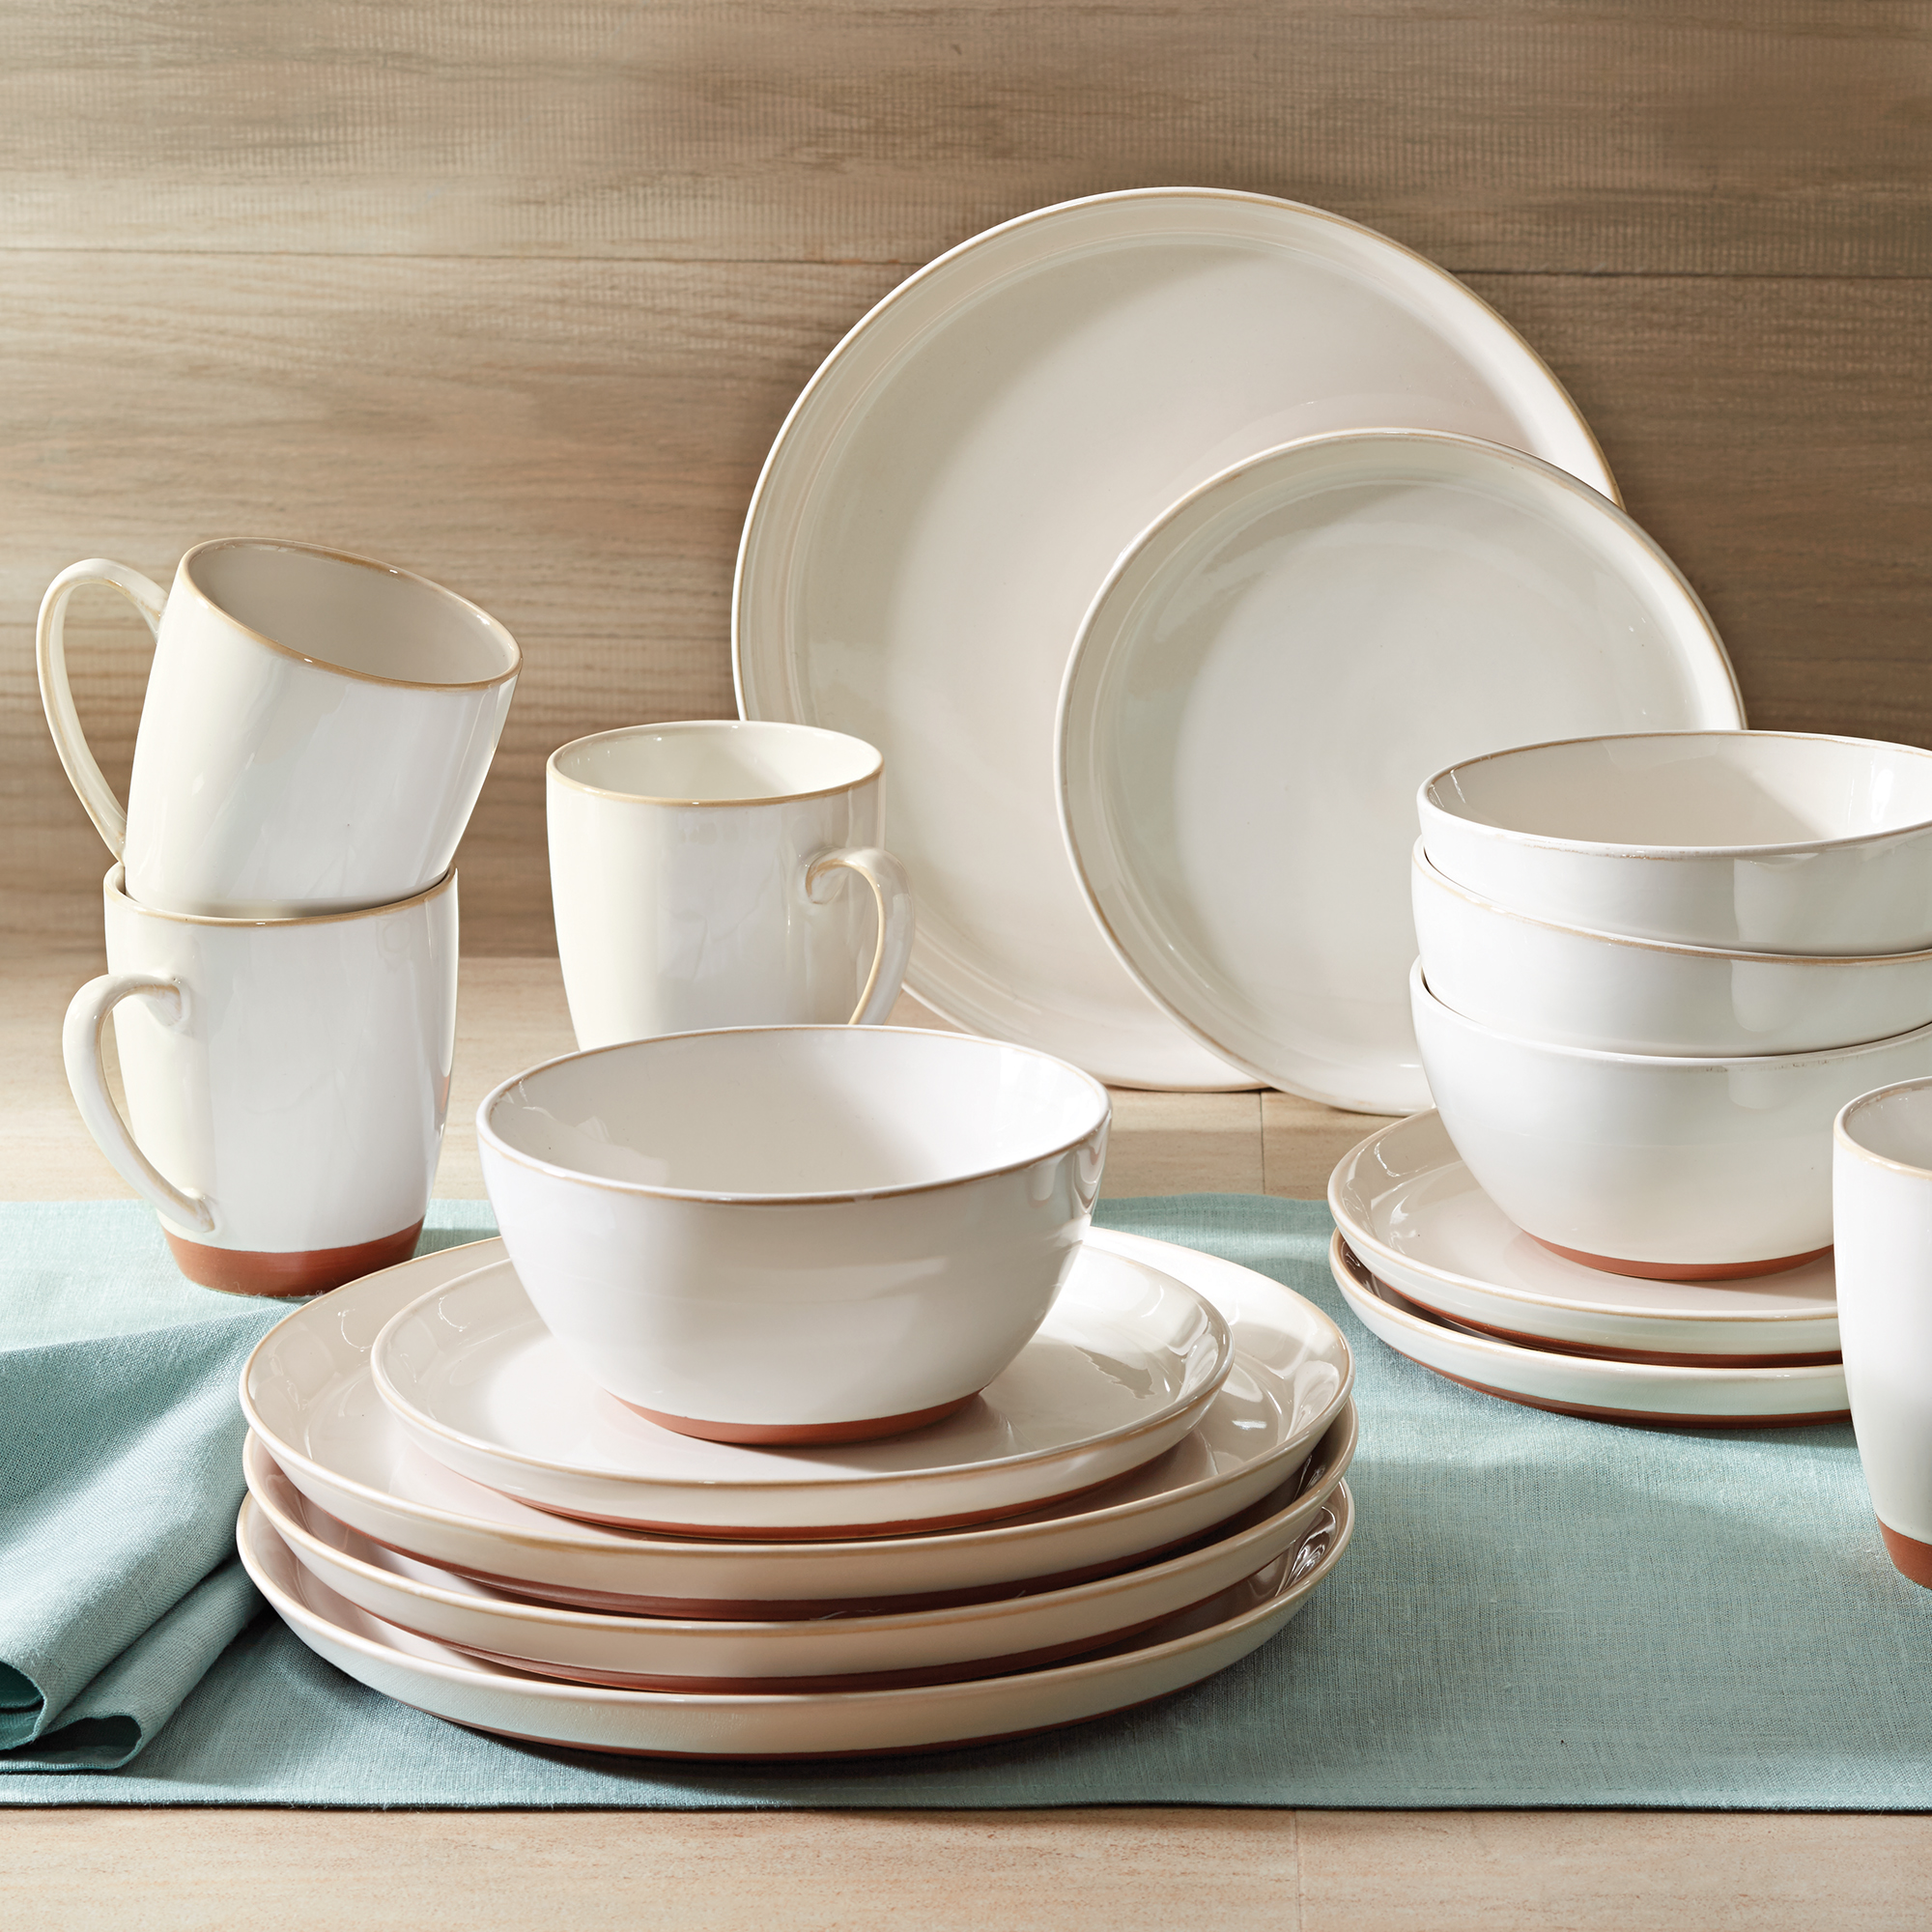 Better Homes and Gardens Claybrooke 16 Piece Dinnerware Set, Cream by Better Homes and Gardens